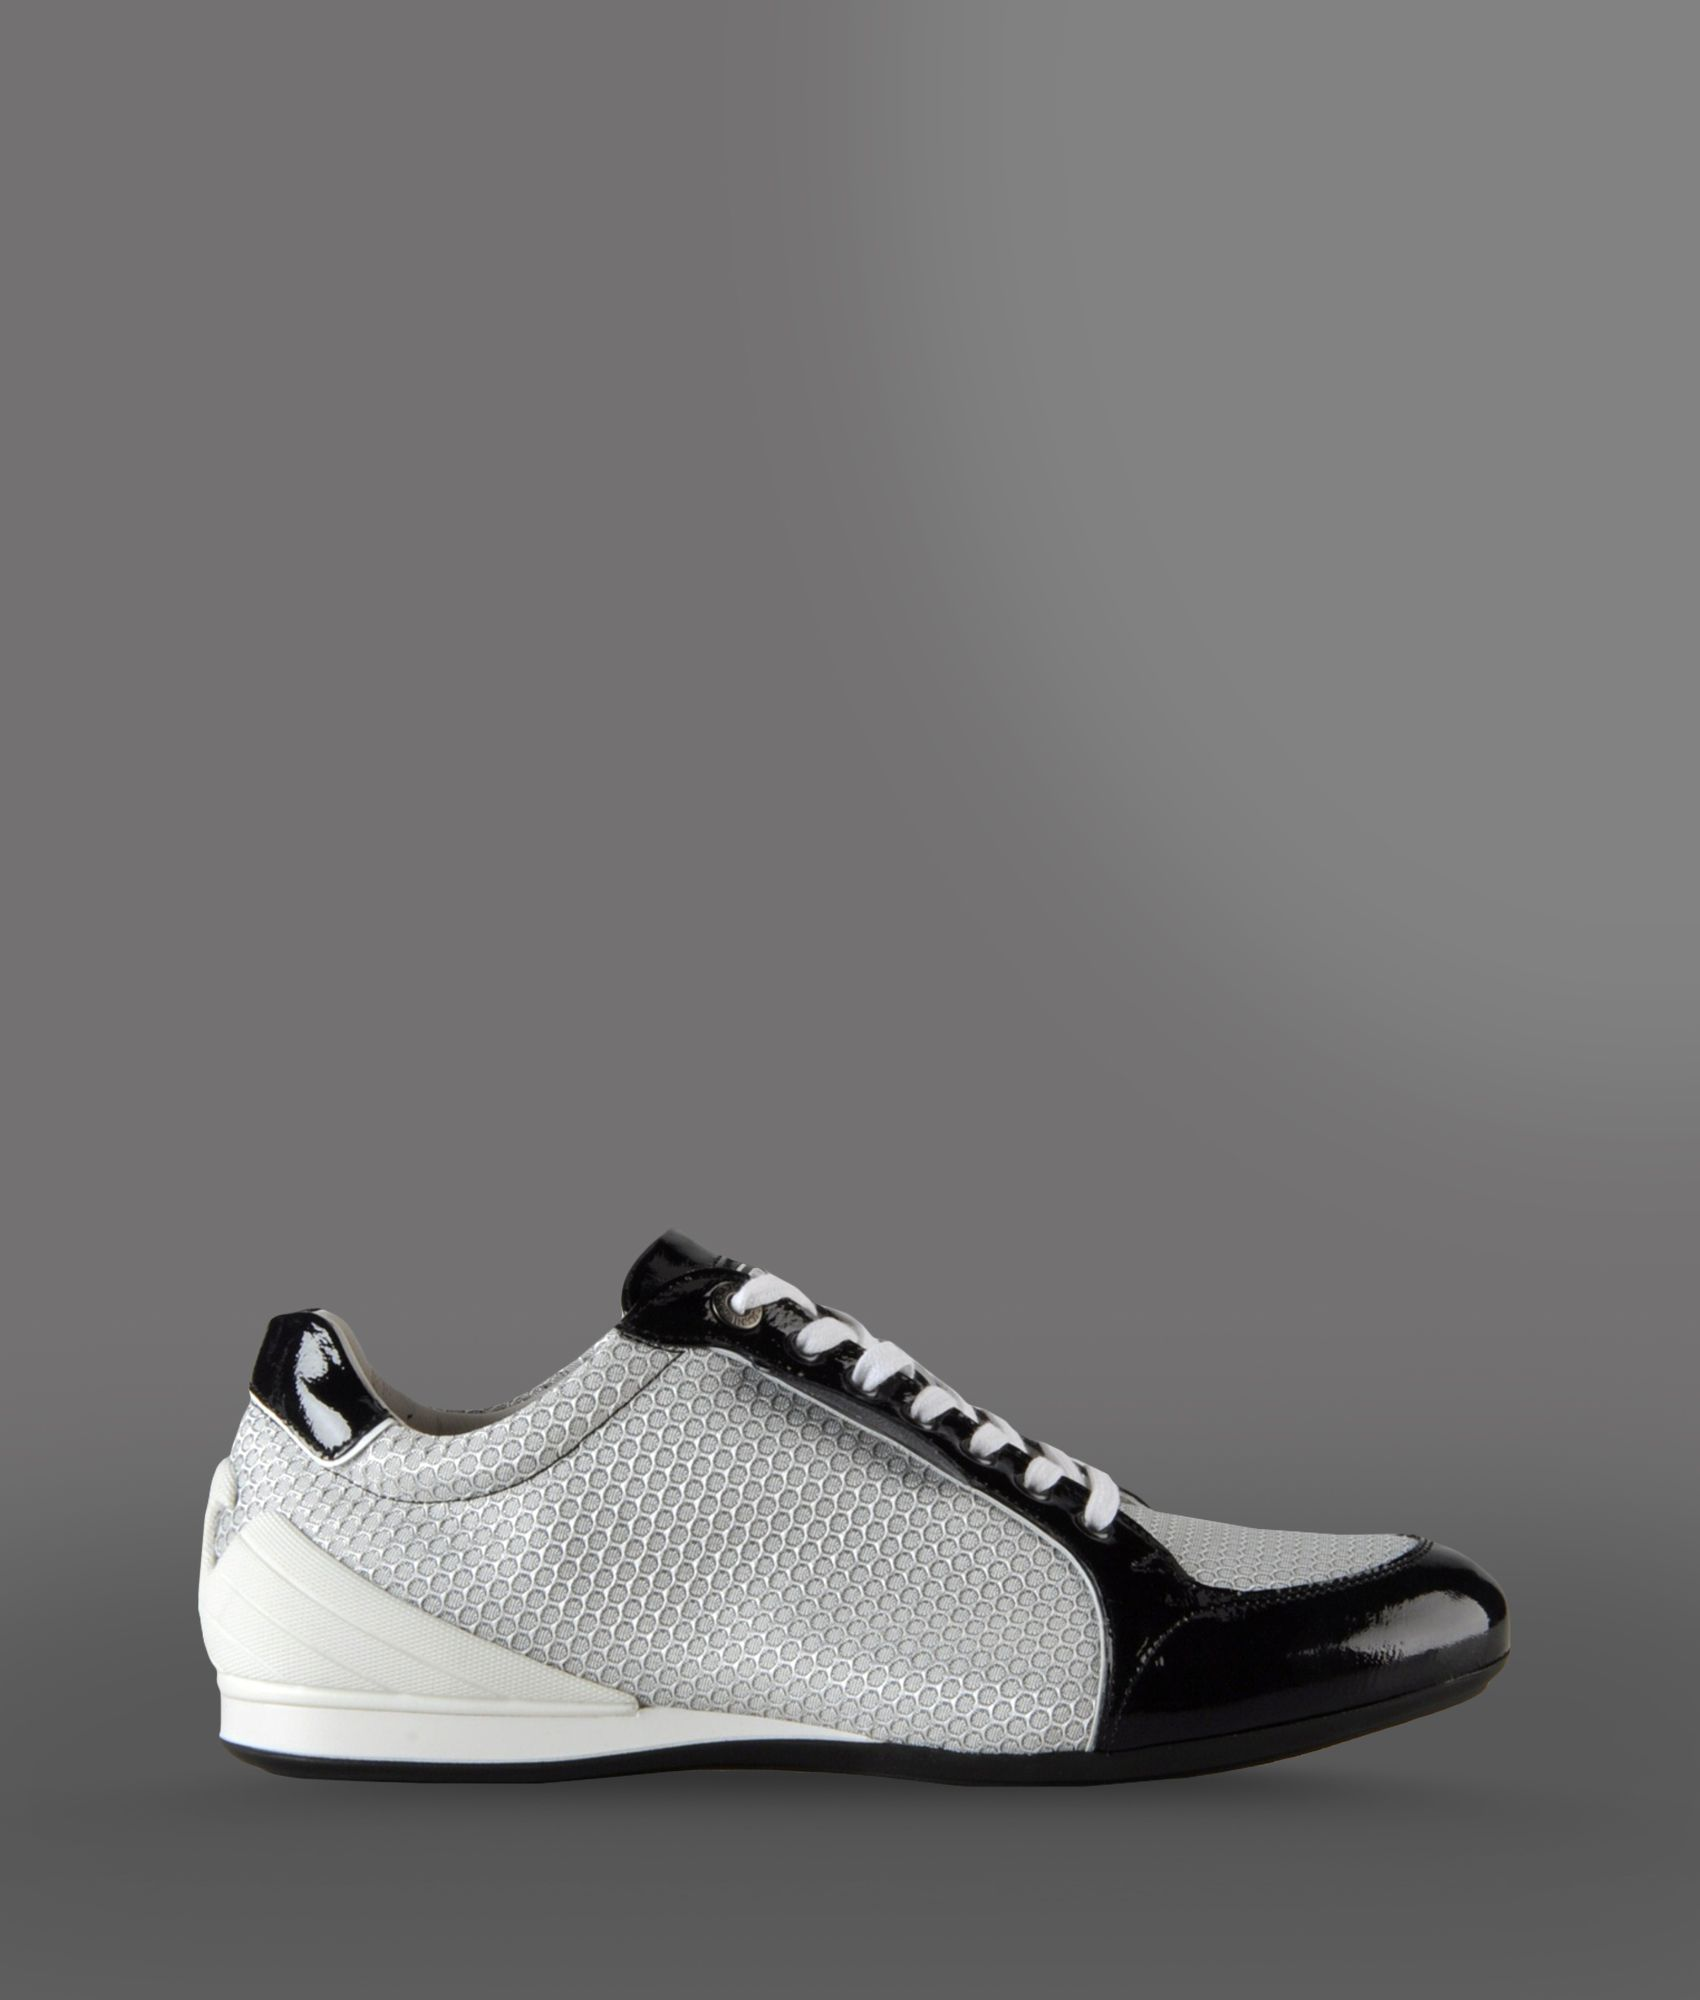 Lyst Emporio Armani Sneakers In White For Men